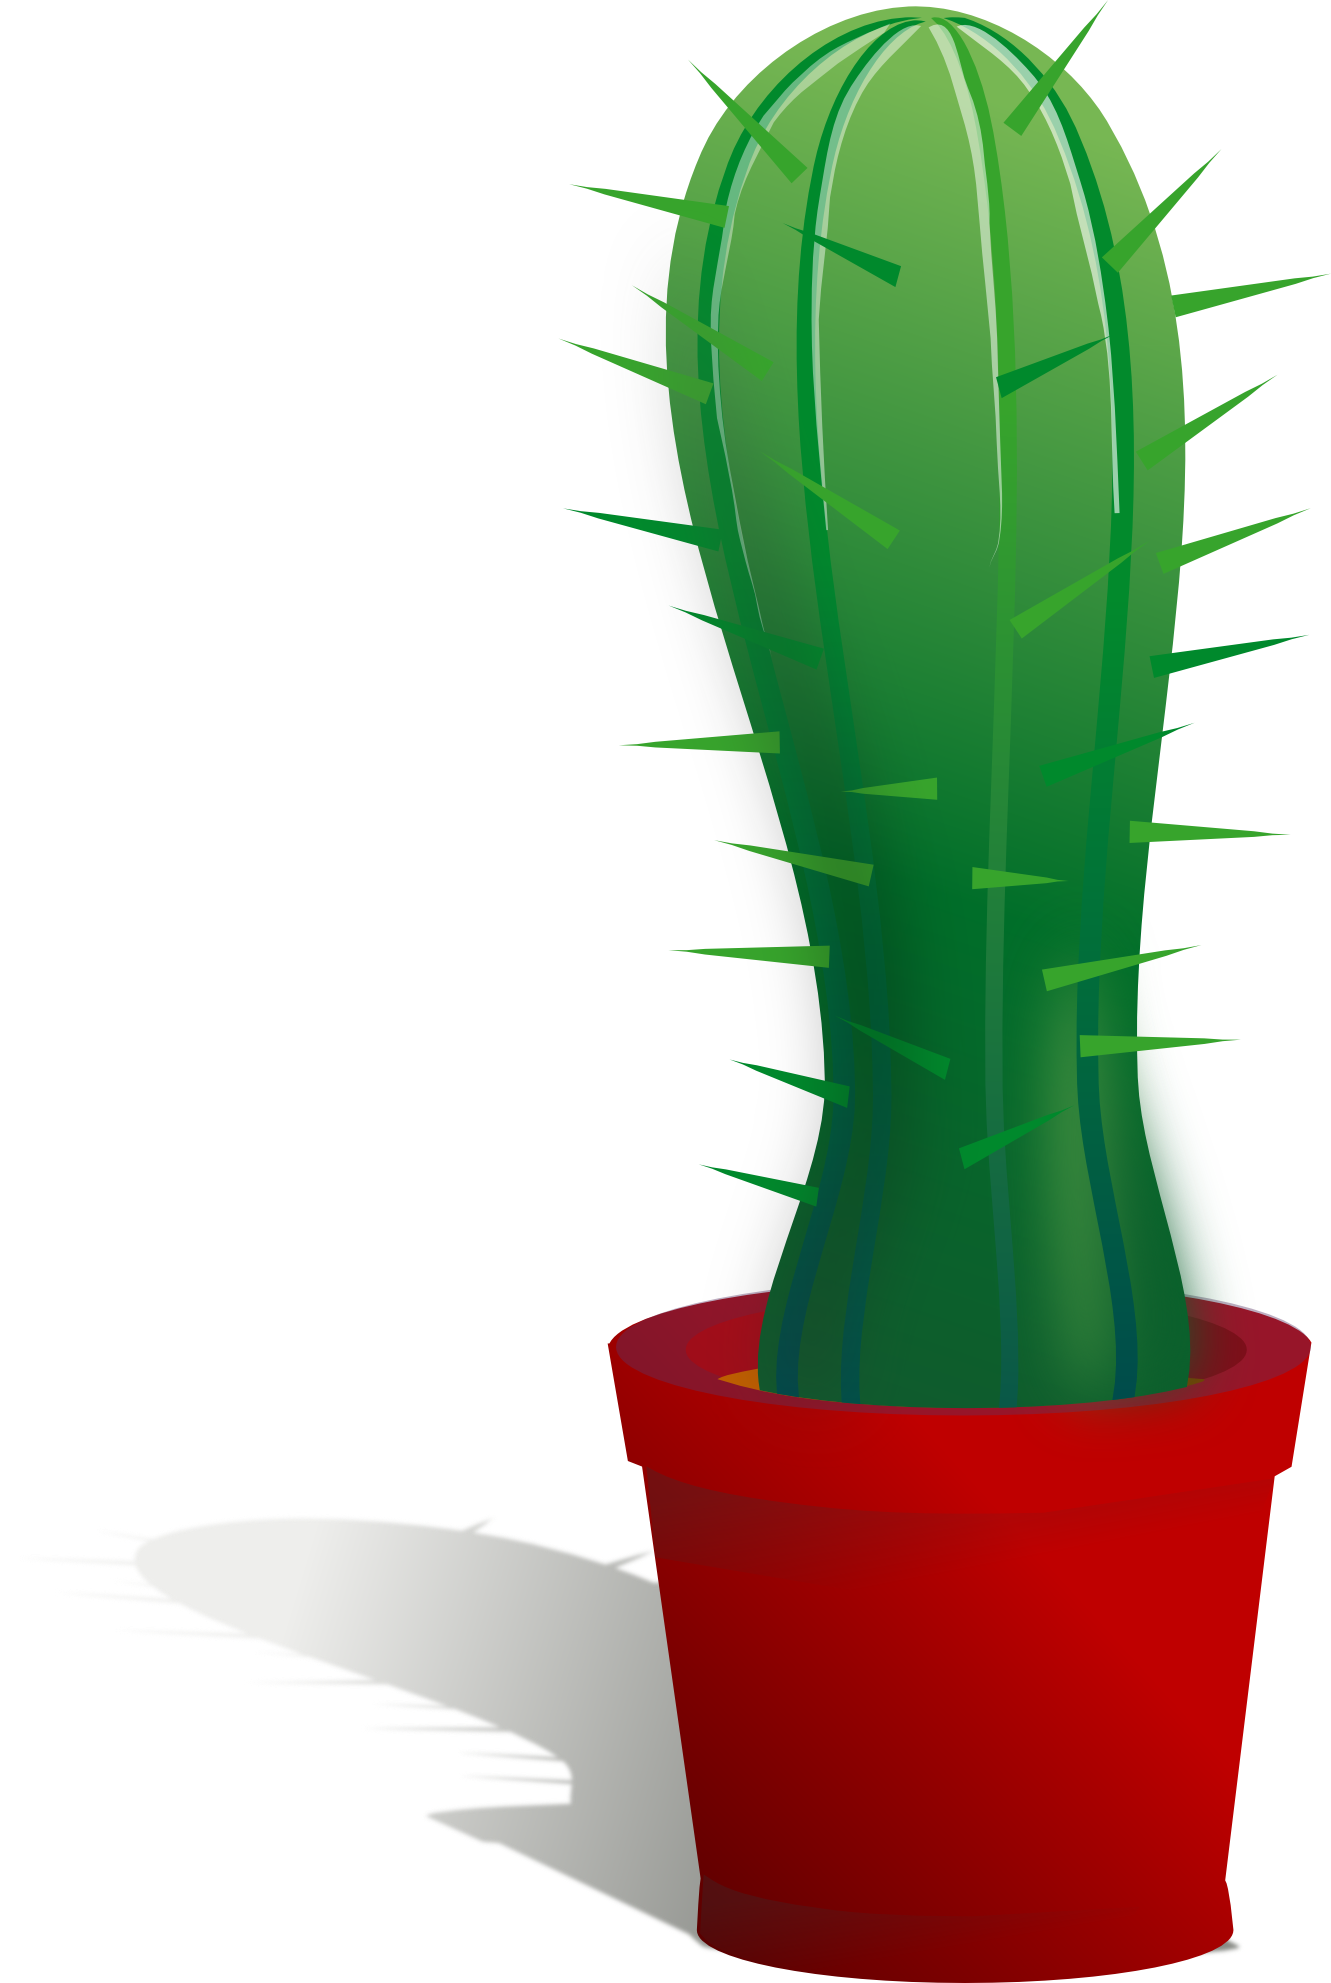 Cactus clipart potted. Free vector download clip